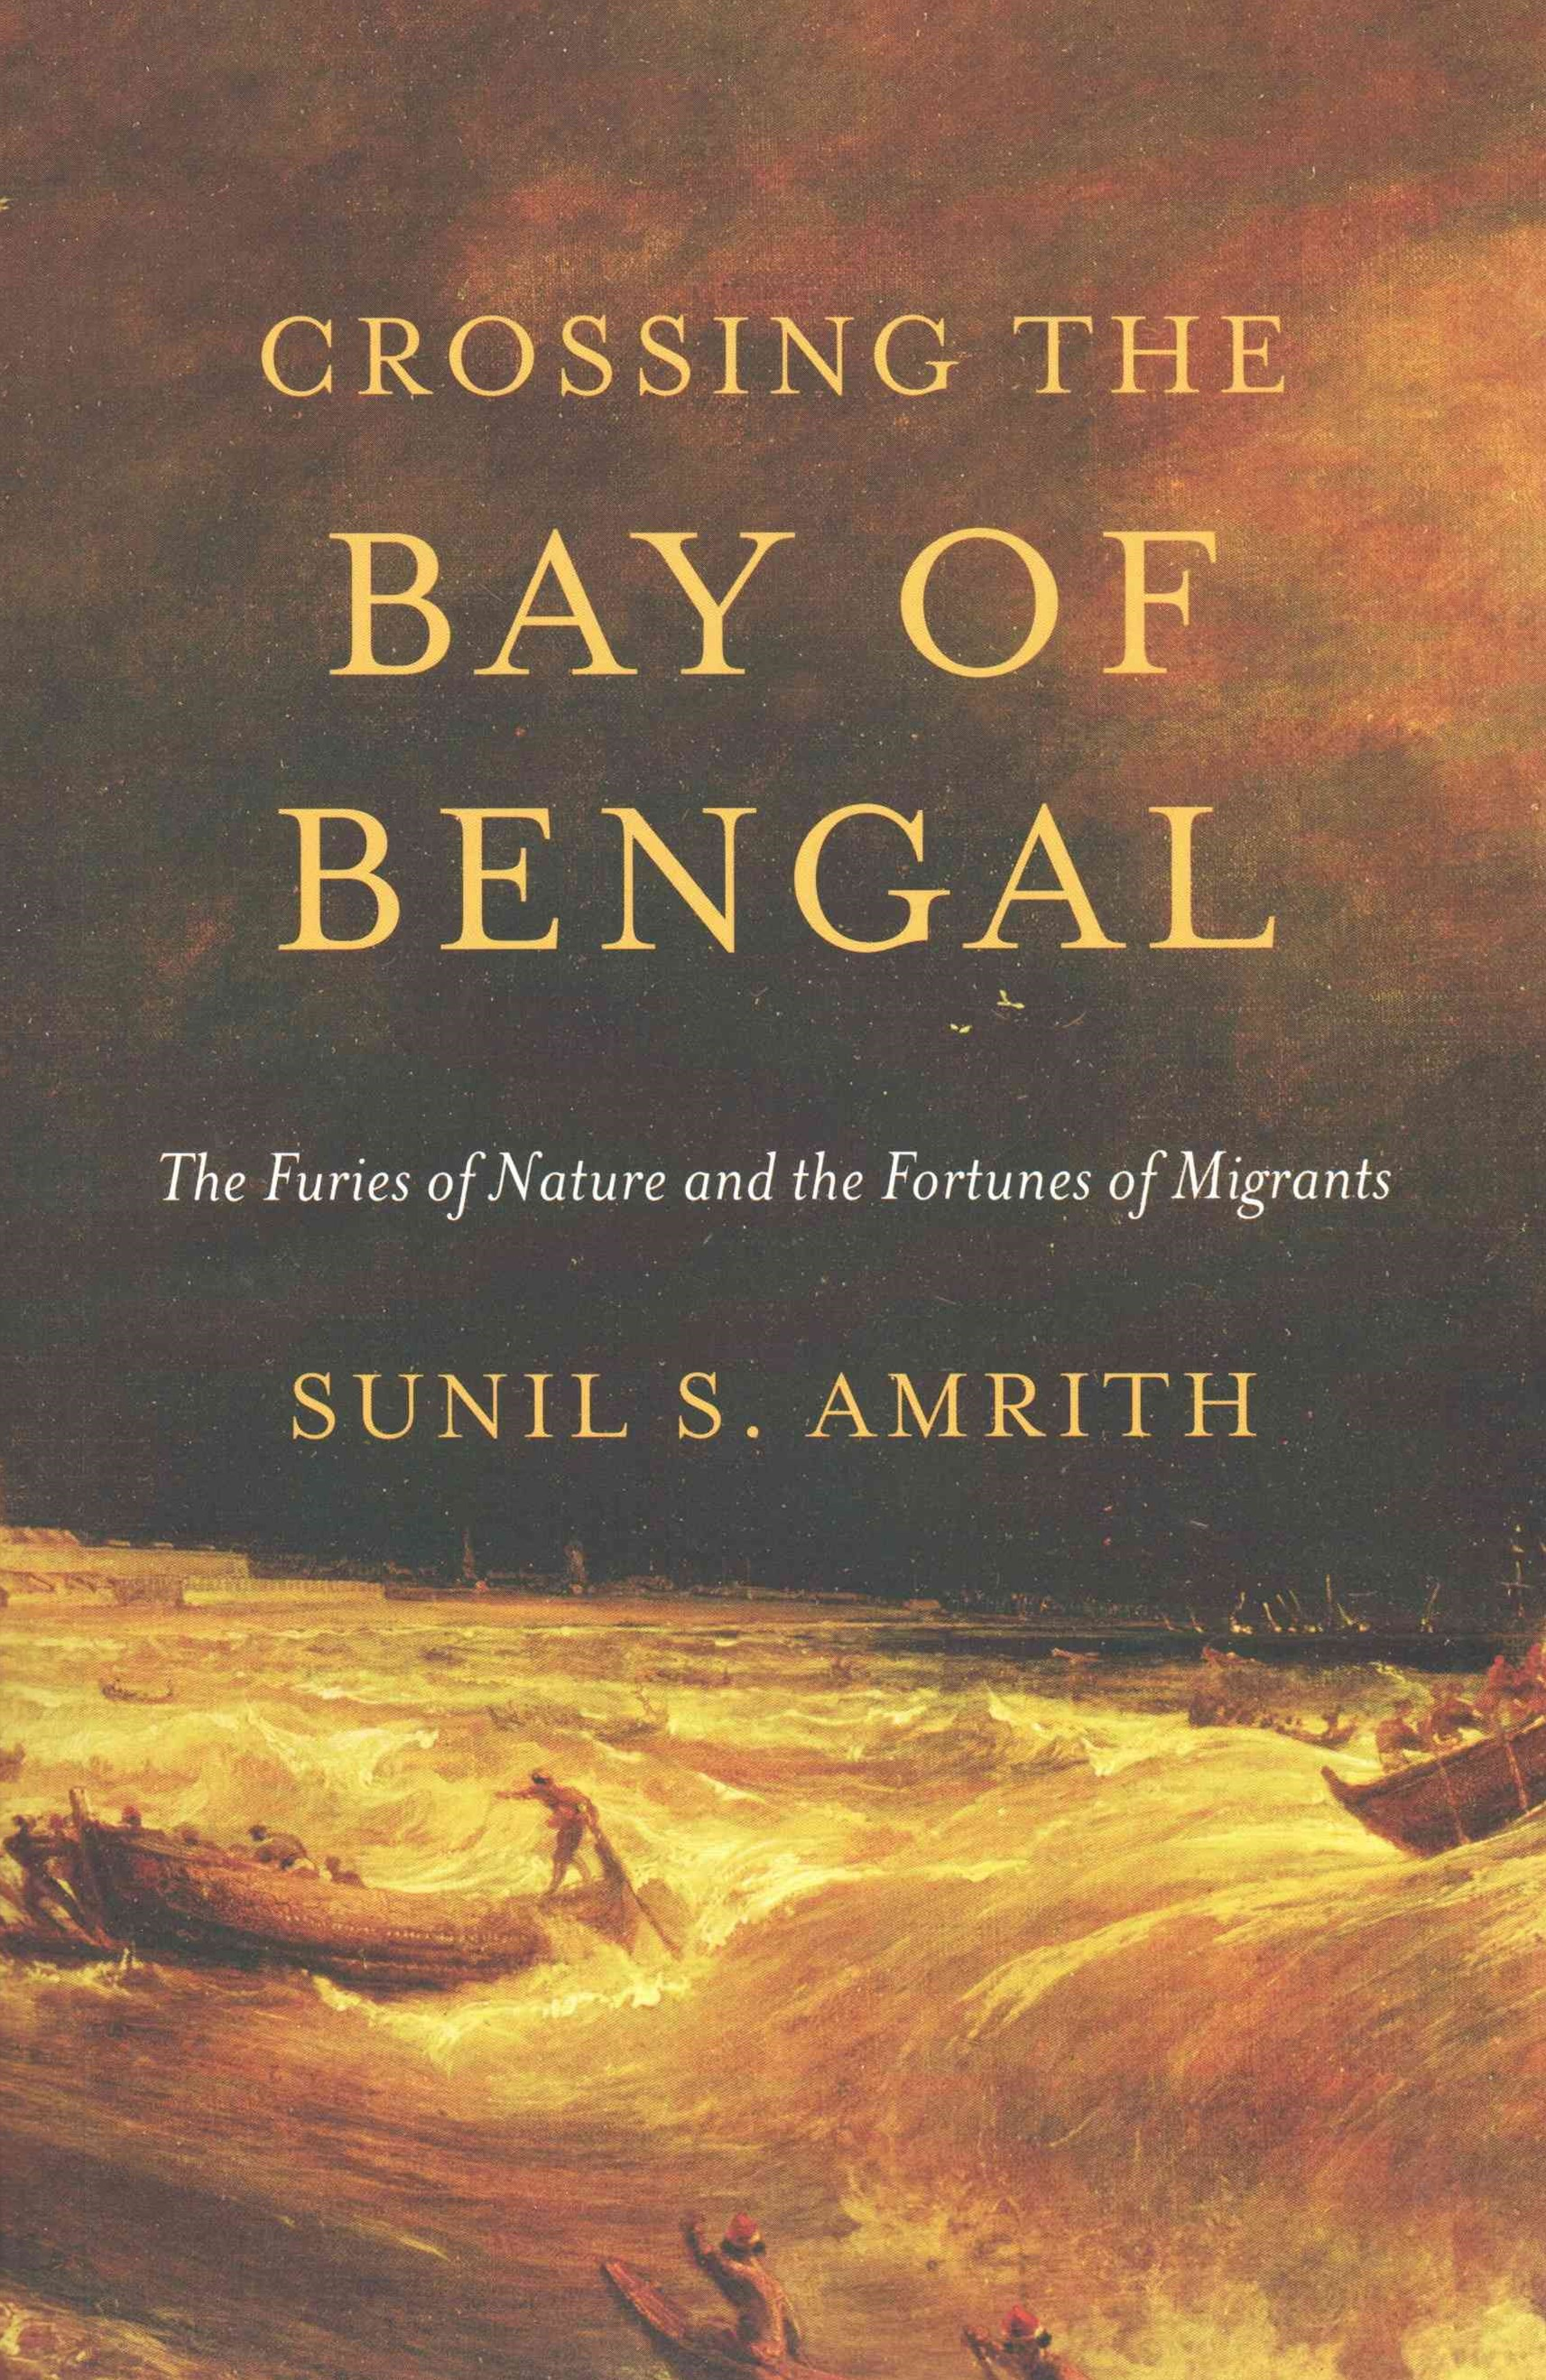 Crossing the Bay of Bengal